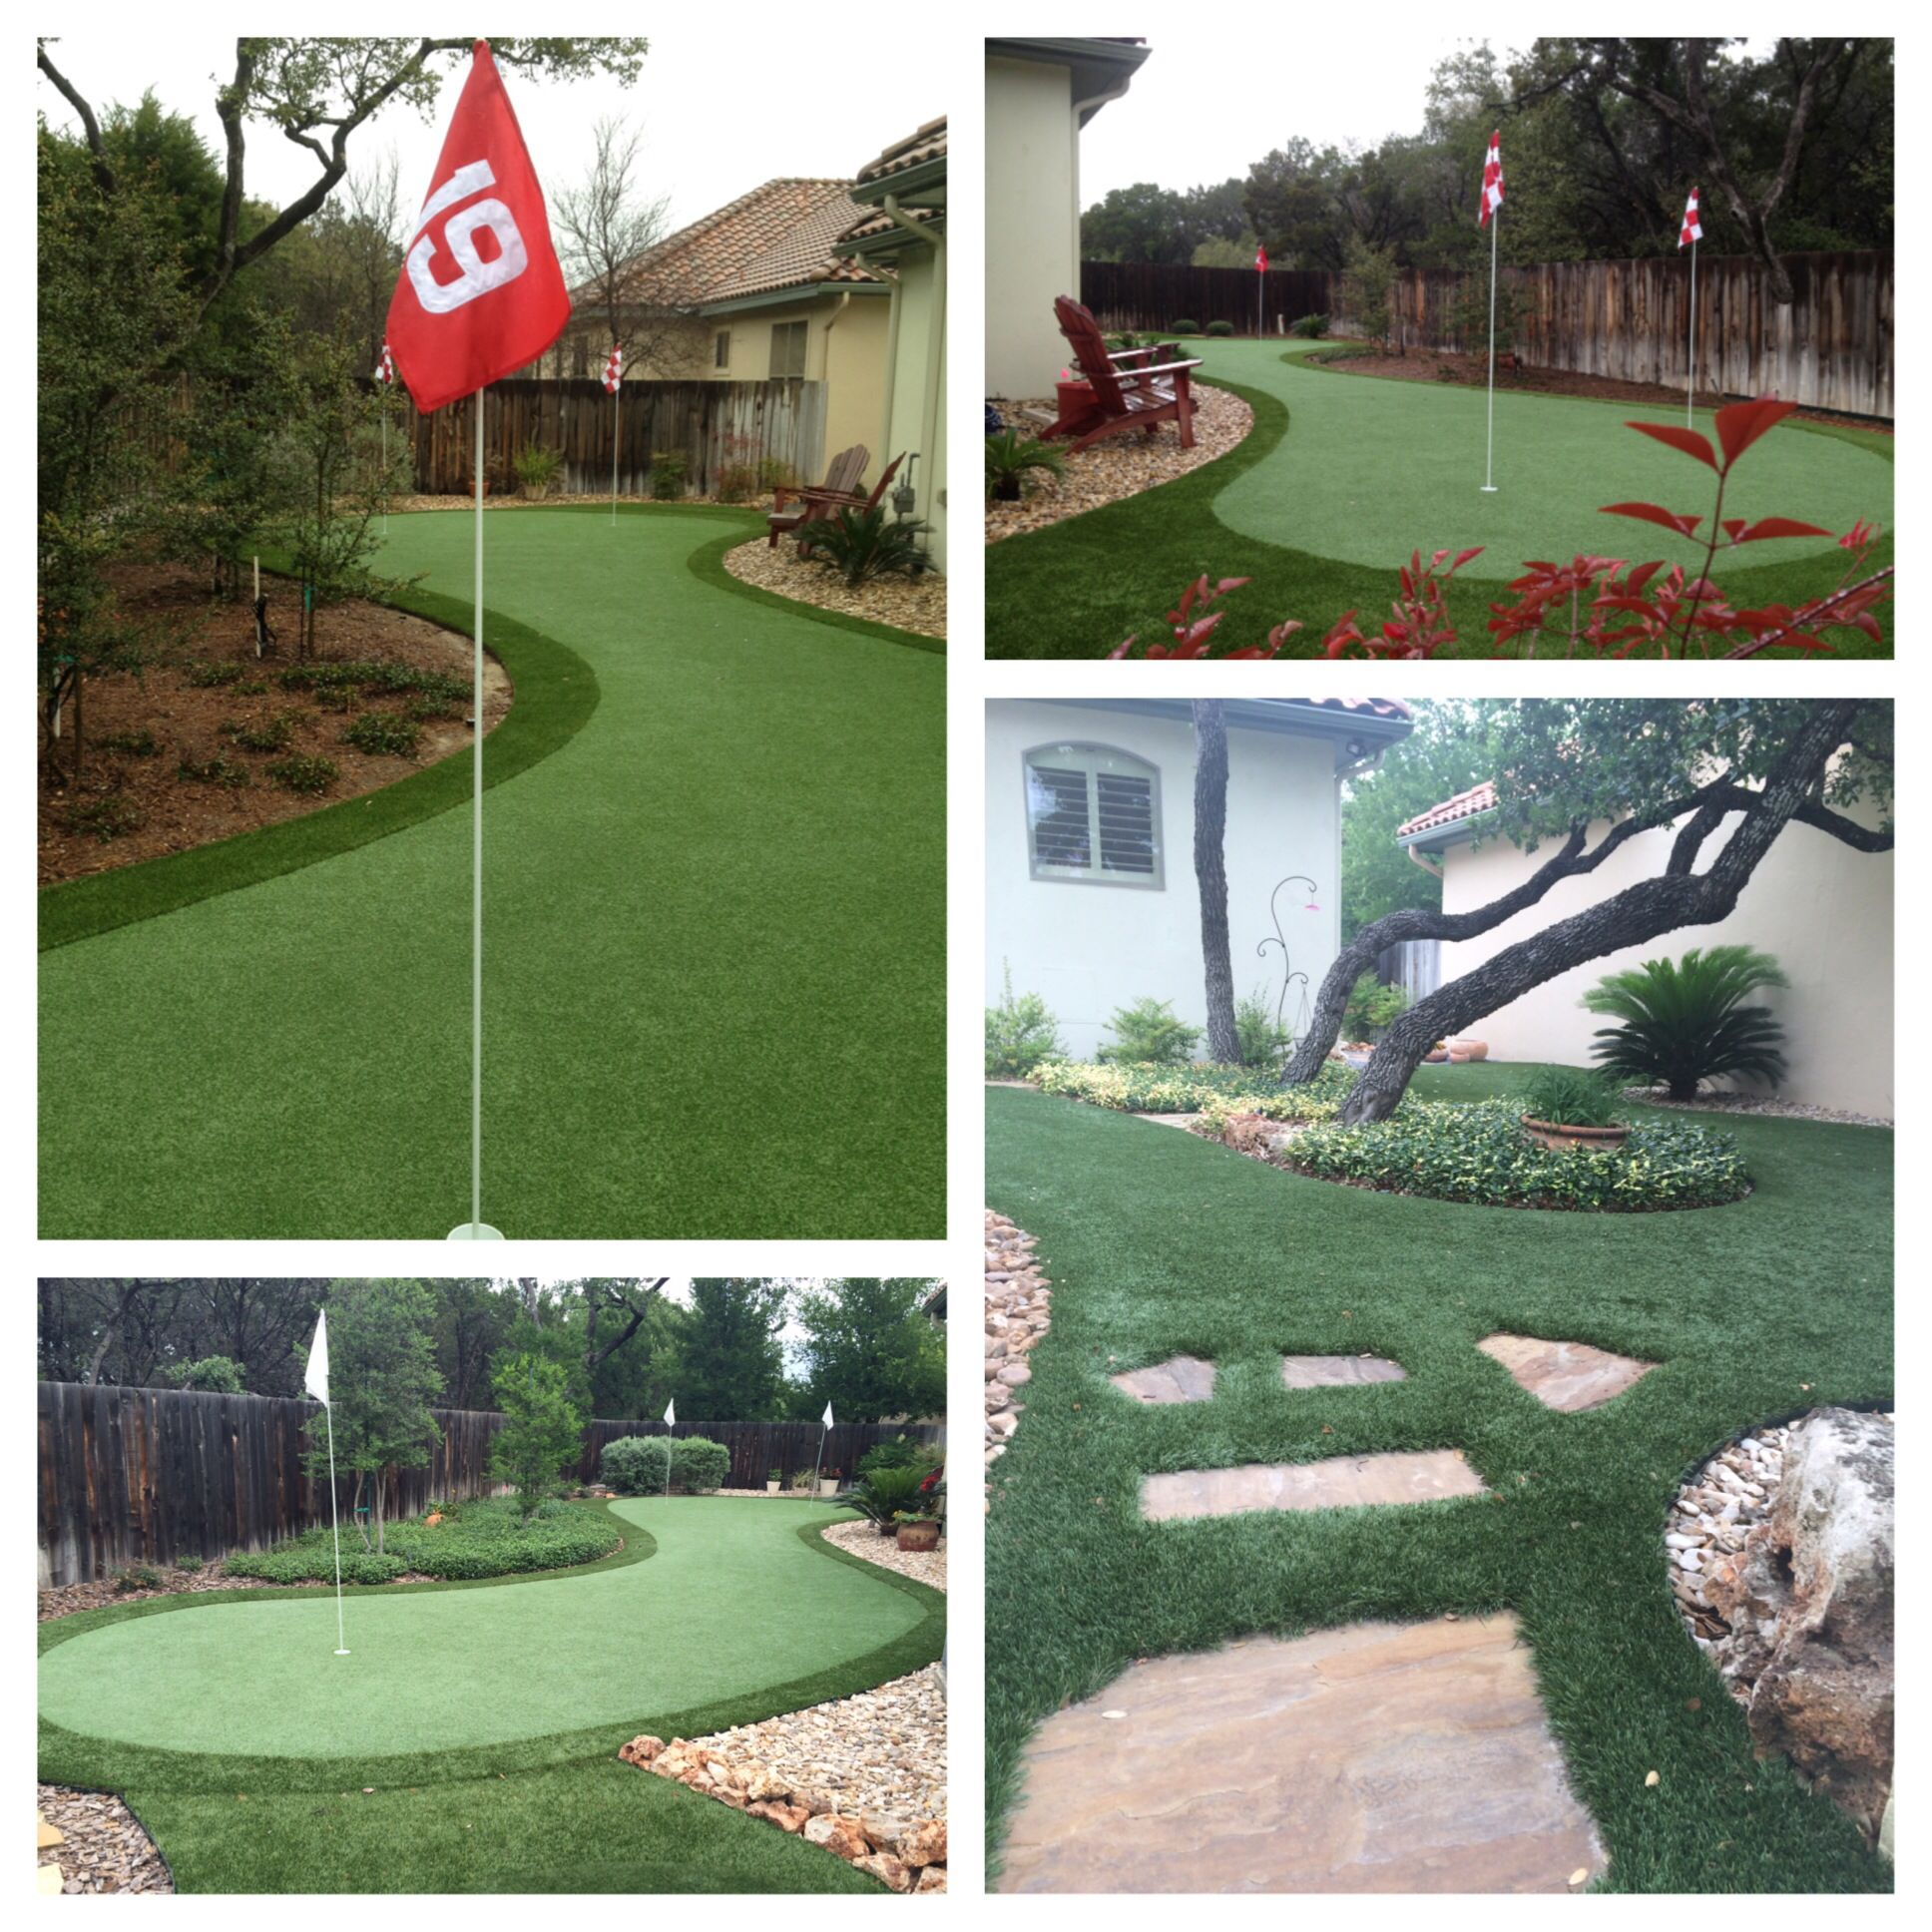 Bentley Manor synthetic putting green and artificial turf side yard